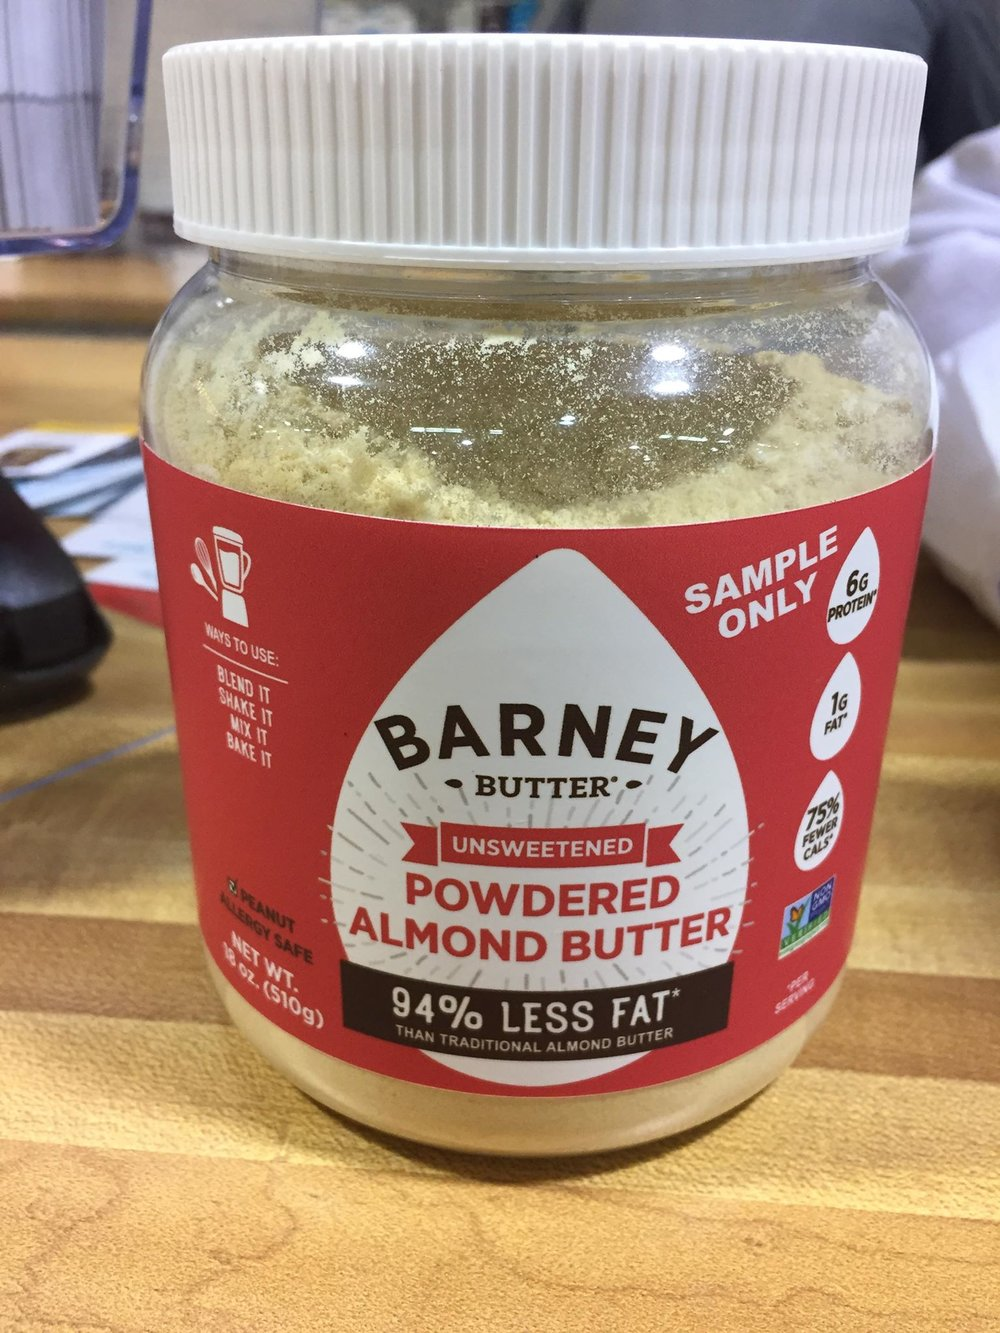 Barney Powdered Almond Butter